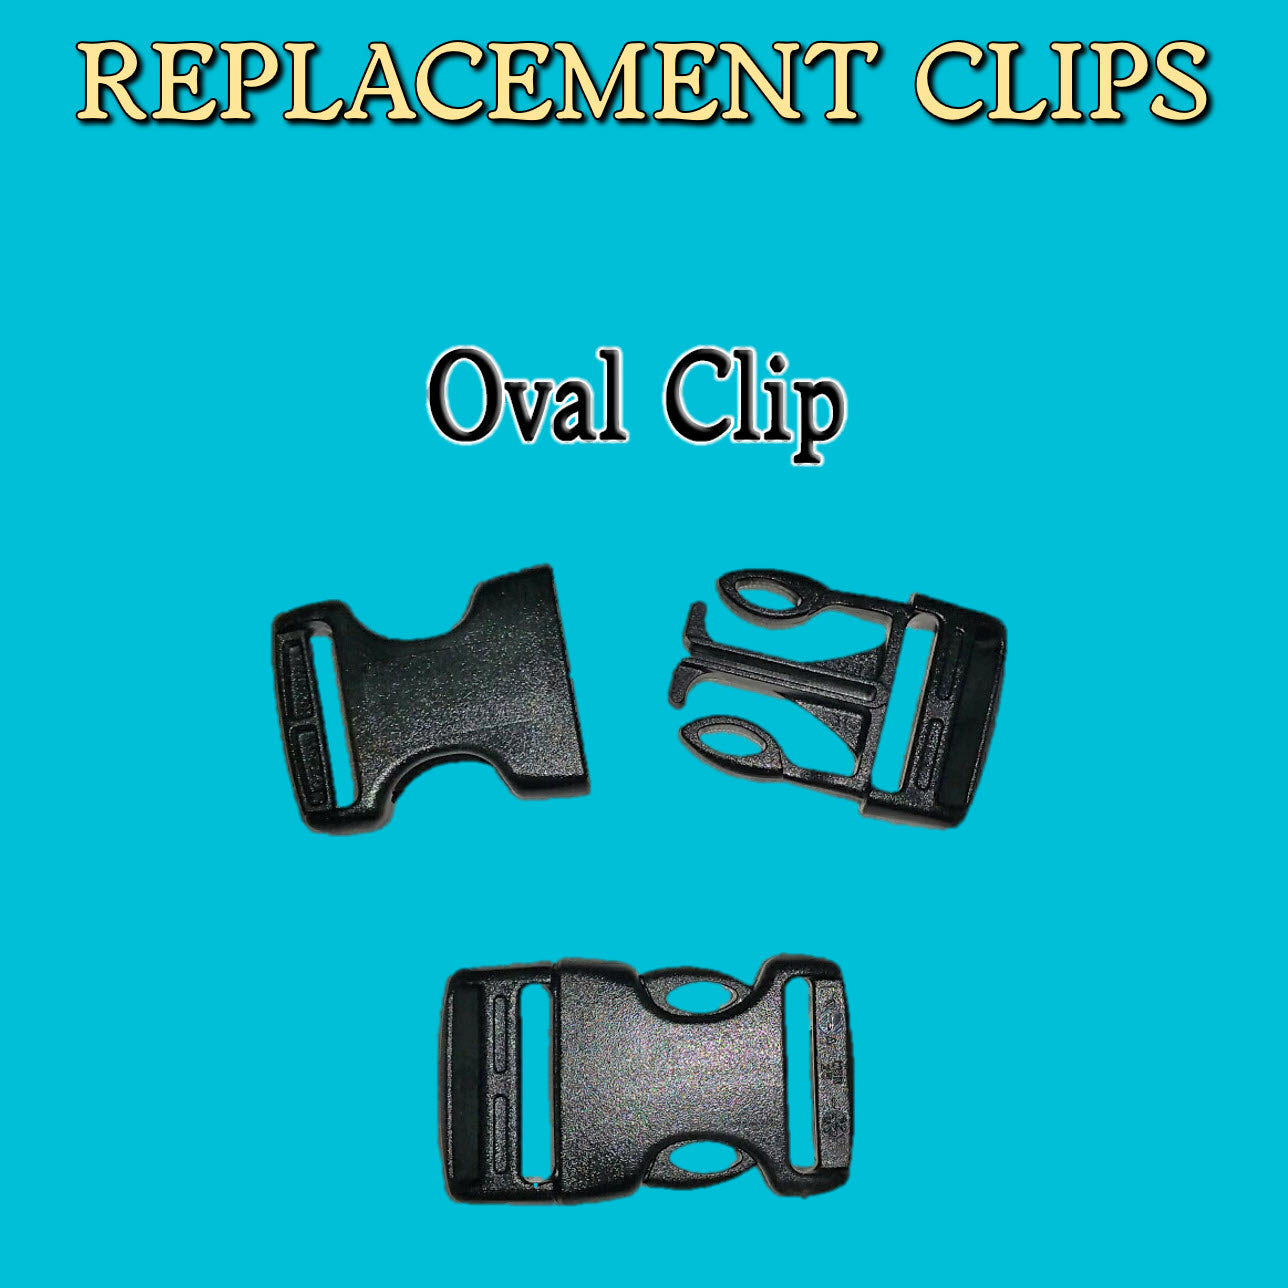 Replacement Clip for Recovery Vizor or some EquiVizor Fly Masks